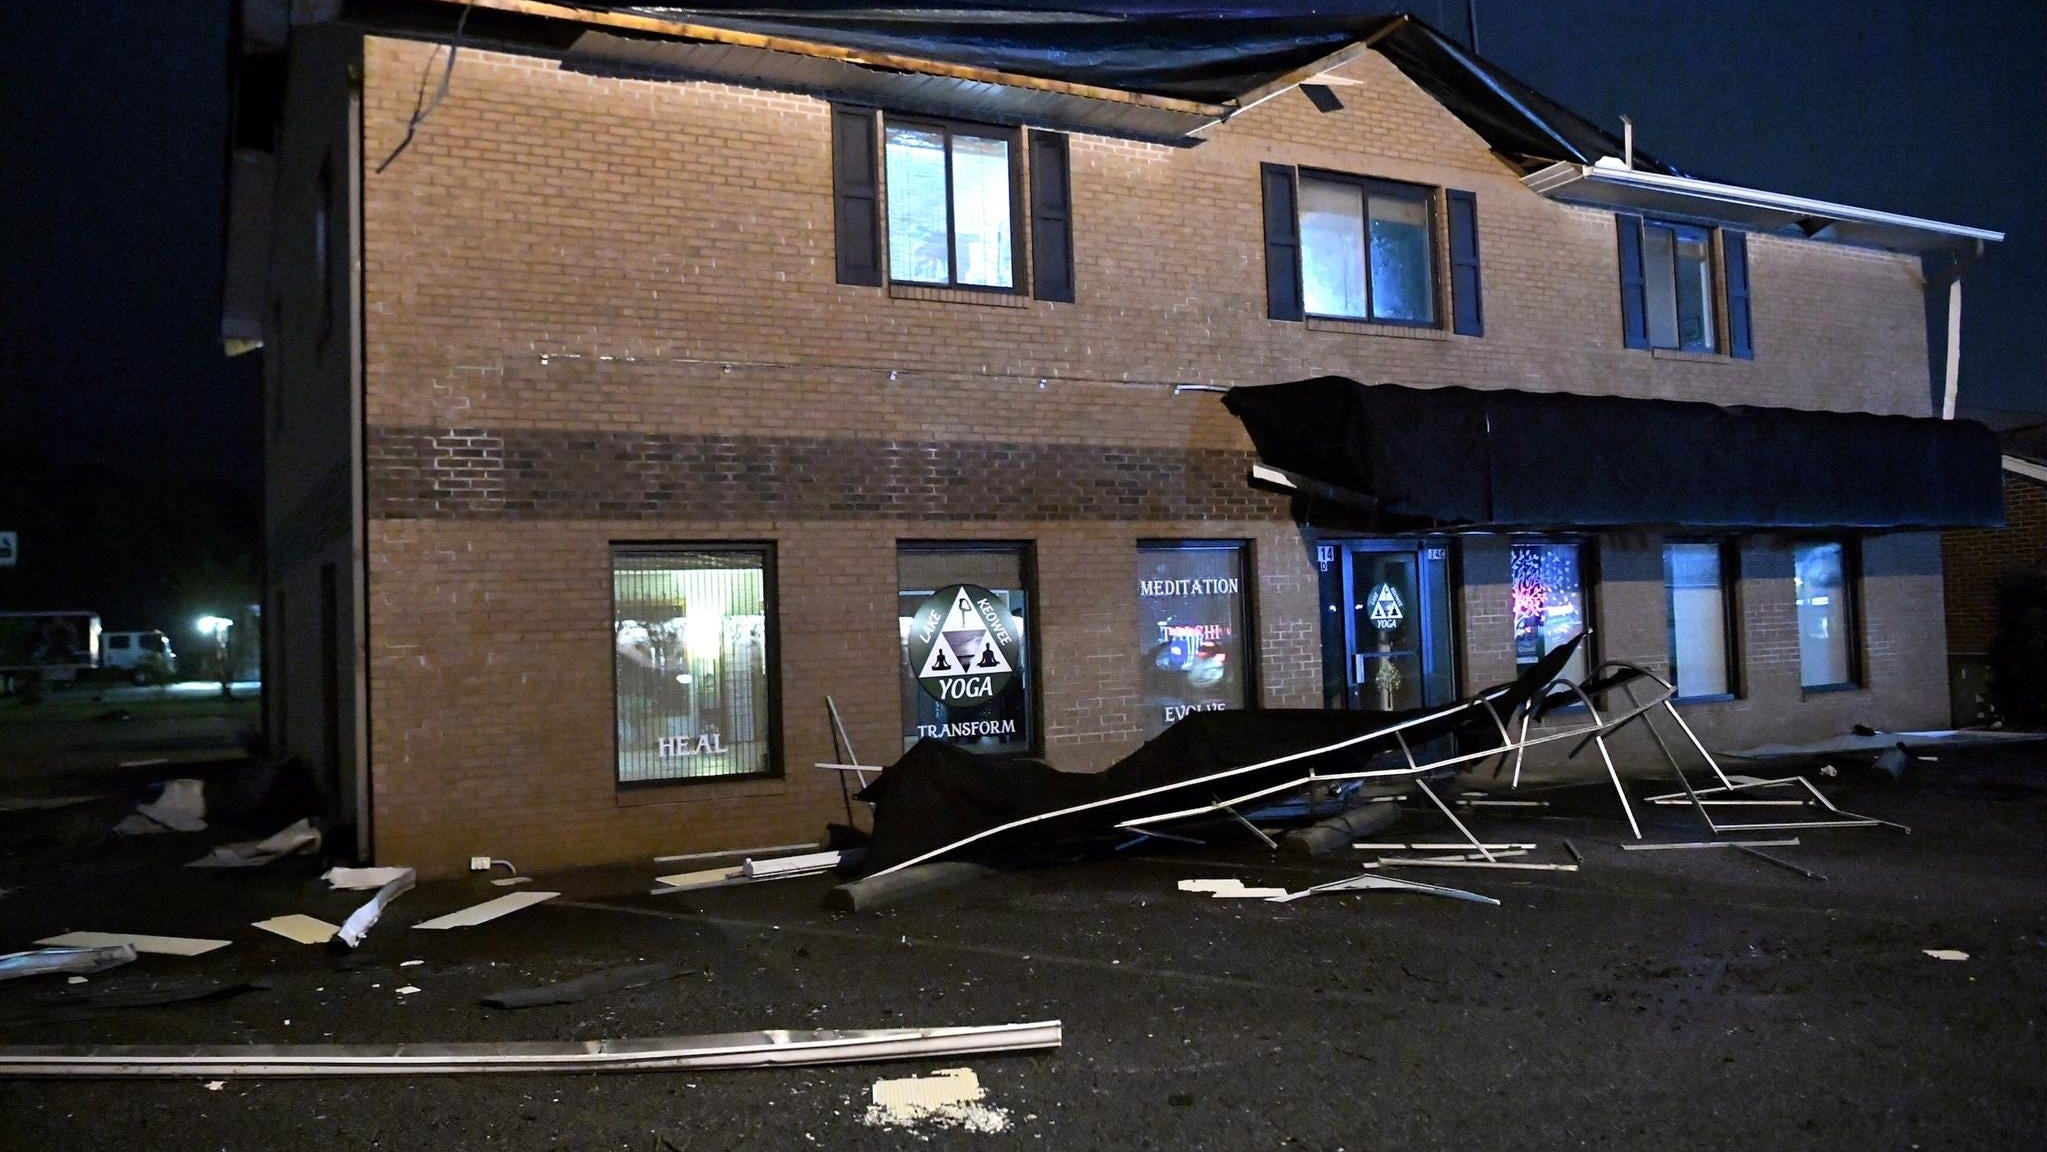 Storm damage, possible microburst reported in Seneca